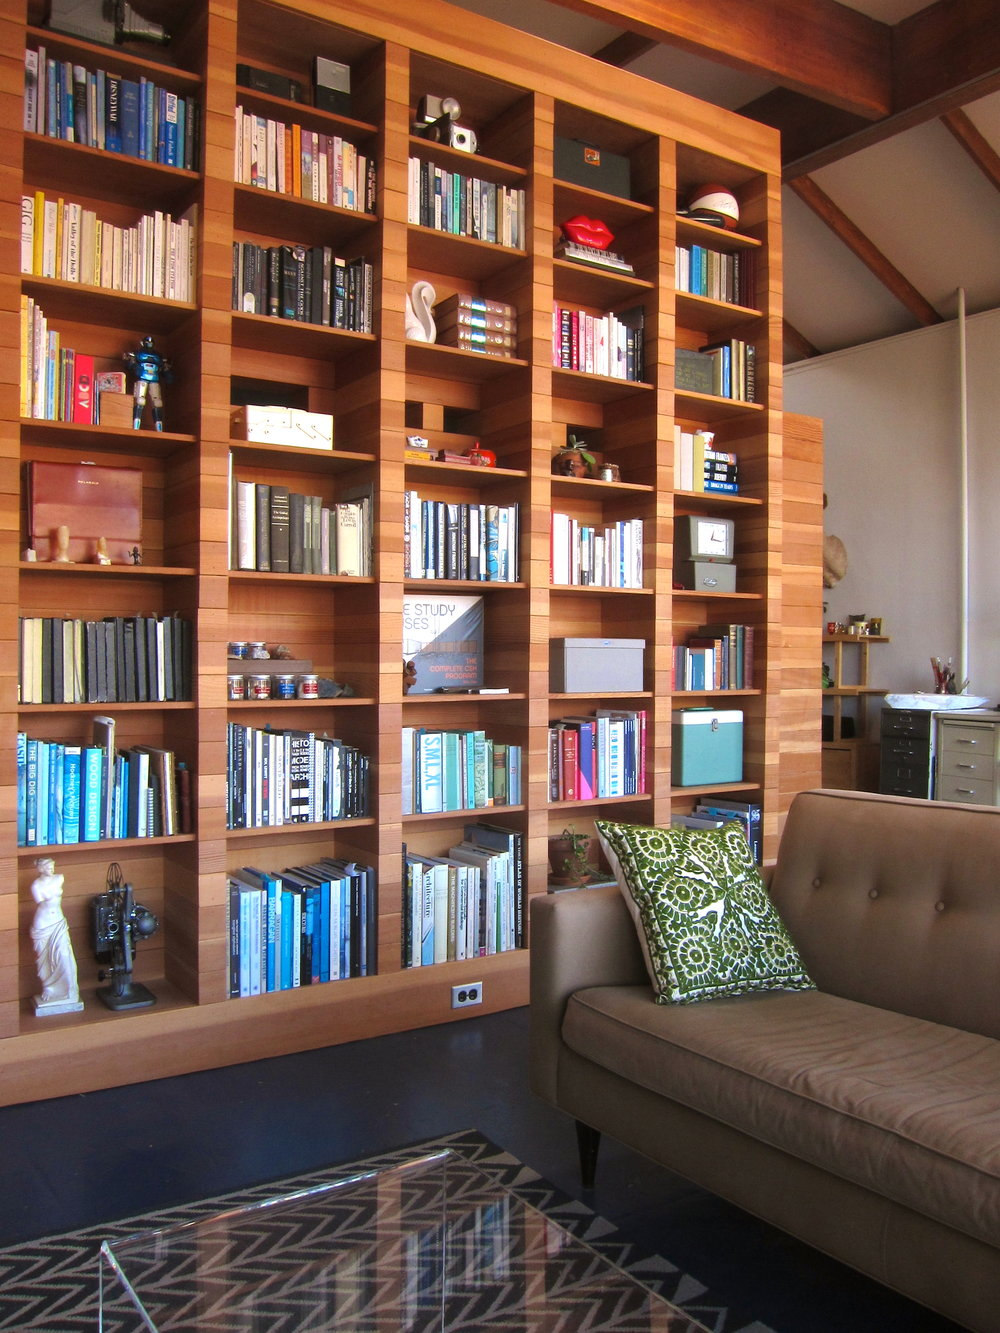 FIR-CLAD BOOKCASE WITH PEEP/VENT HOLES INTO BEDROOM